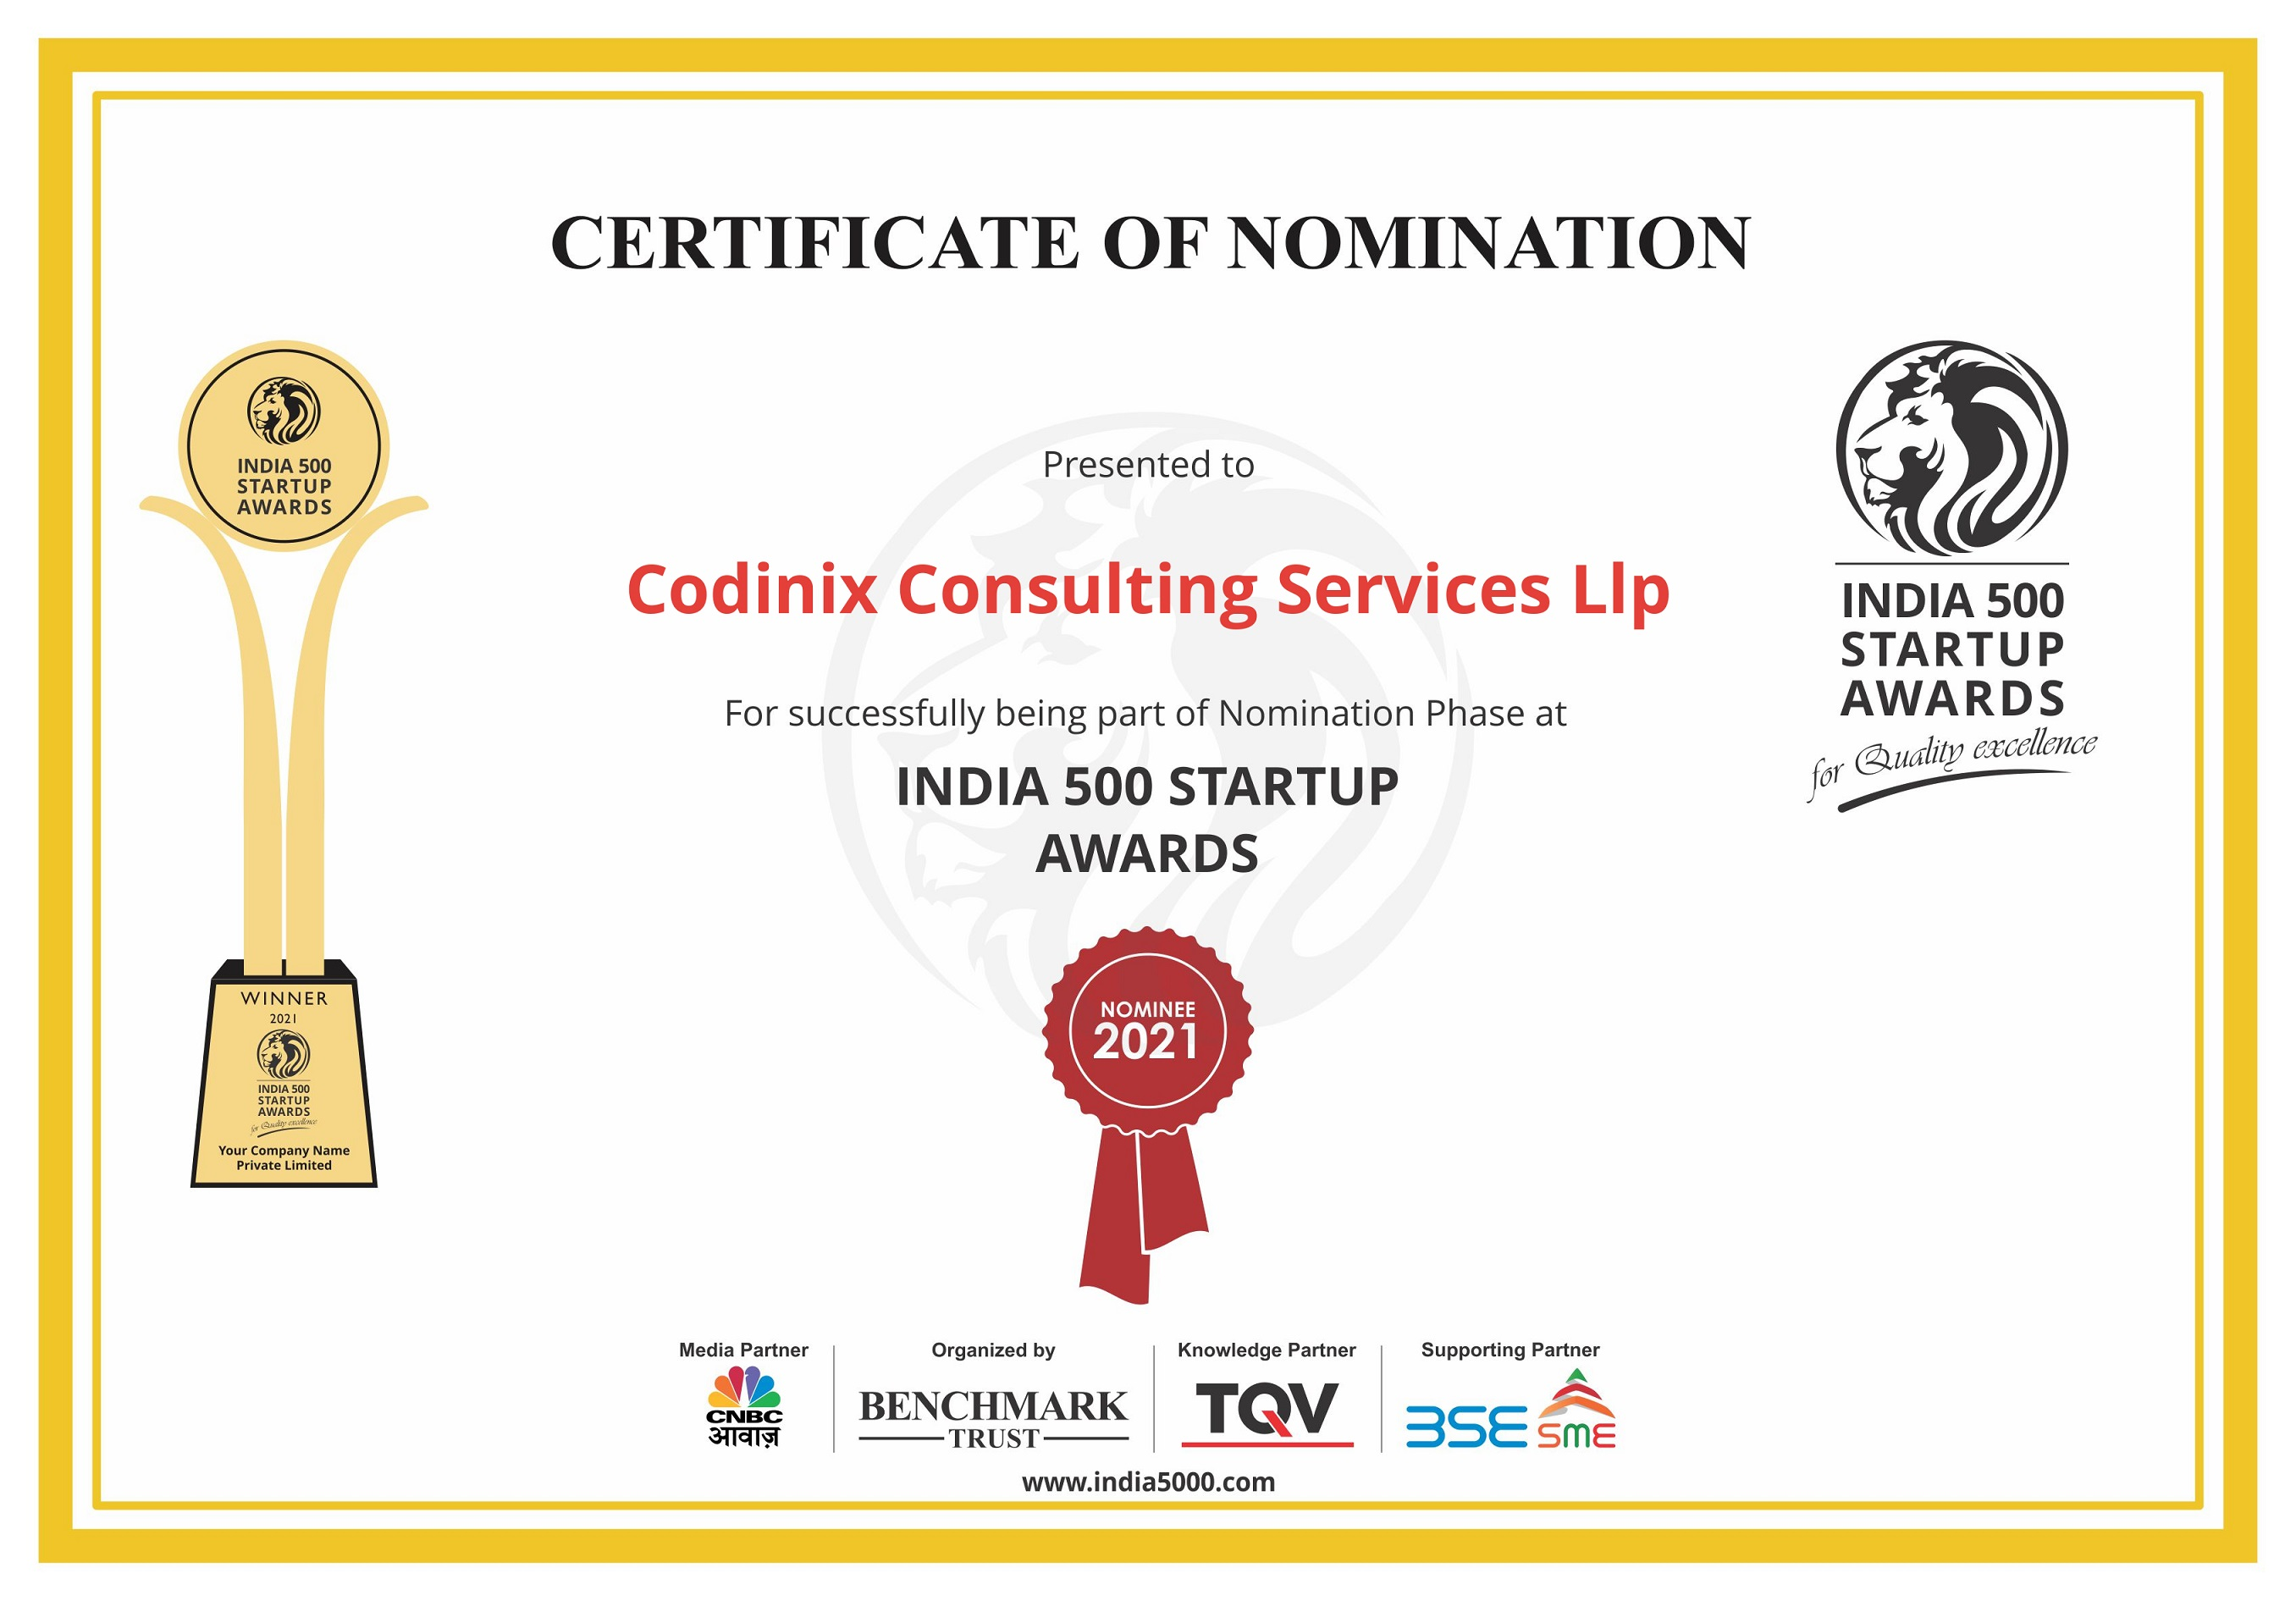 Codinix Received Certificate of Nomination for India 500 Startups Awards 2021